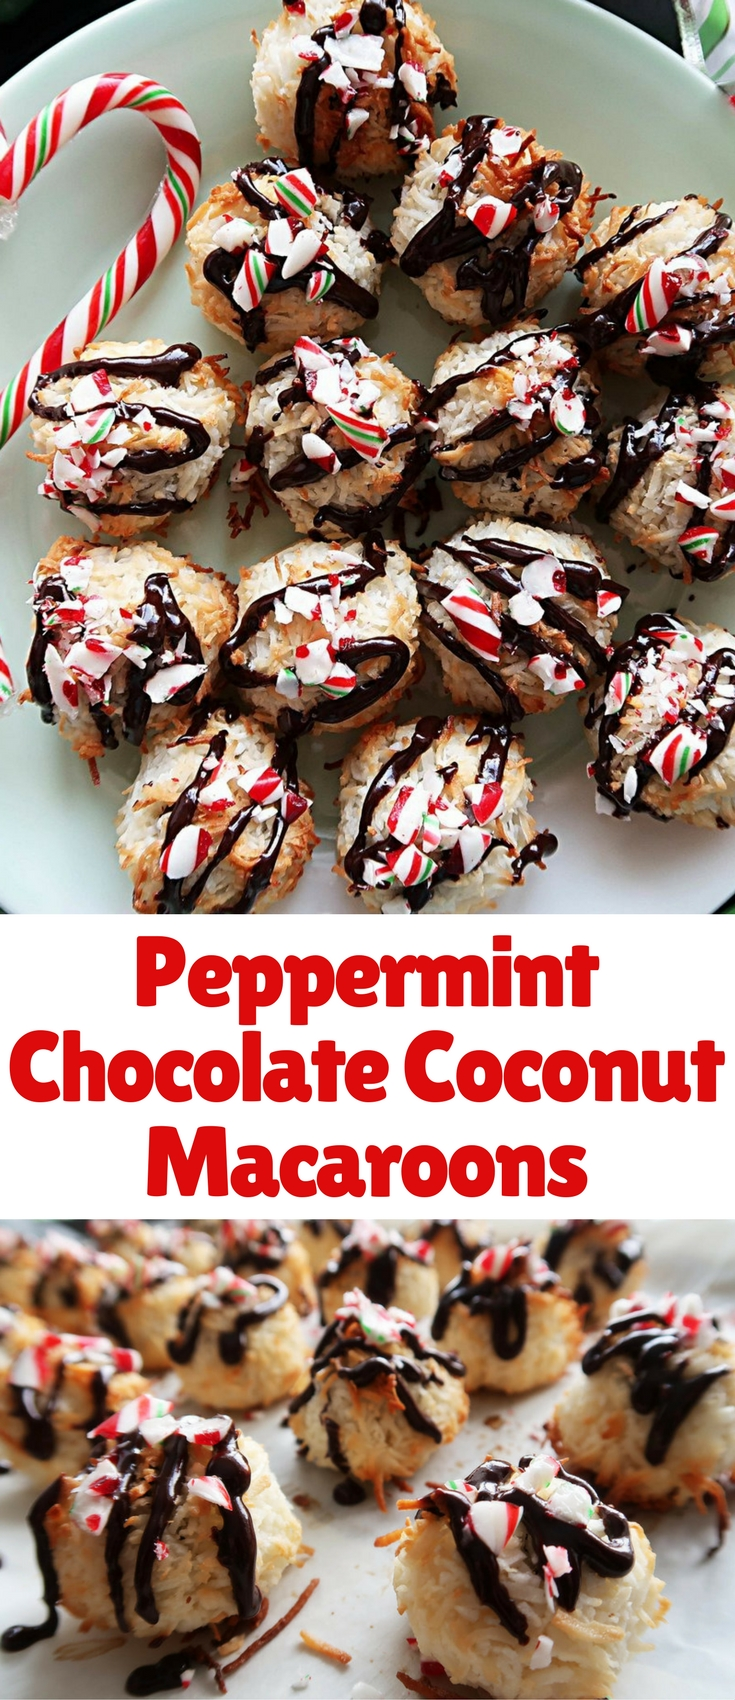 These coconut macaroons are flavoured with peppermint, have chocolate chips baked inside, and are drizzled with melted chocolate and crushed candy canes! A Christmas-themed holiday treat!